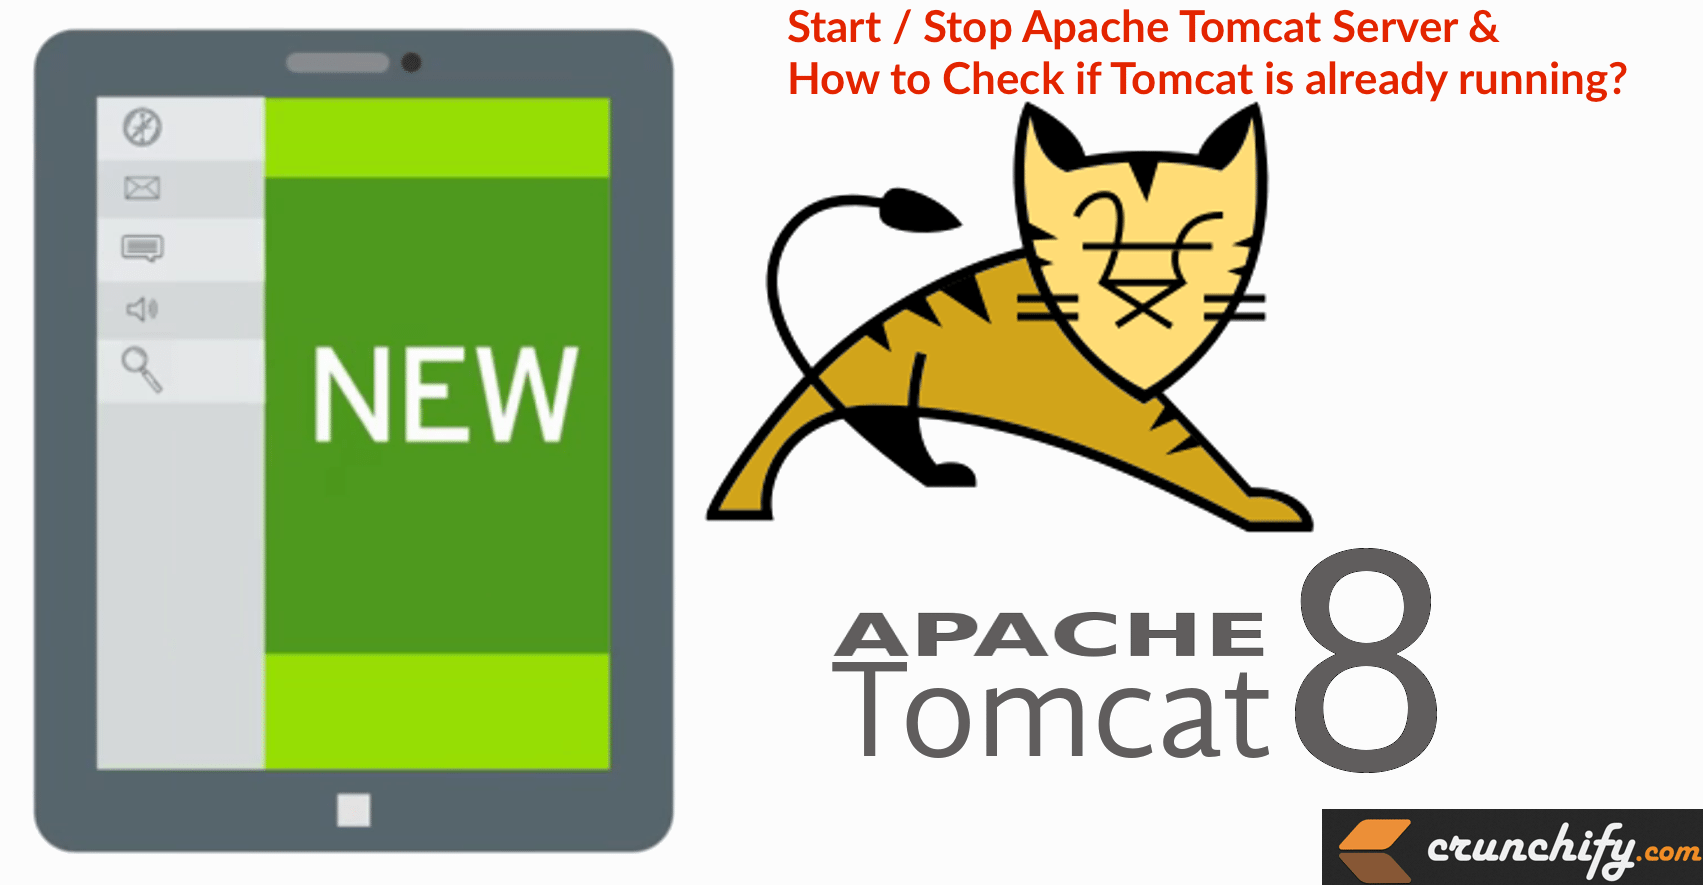 How to Check if Tomcat is already running